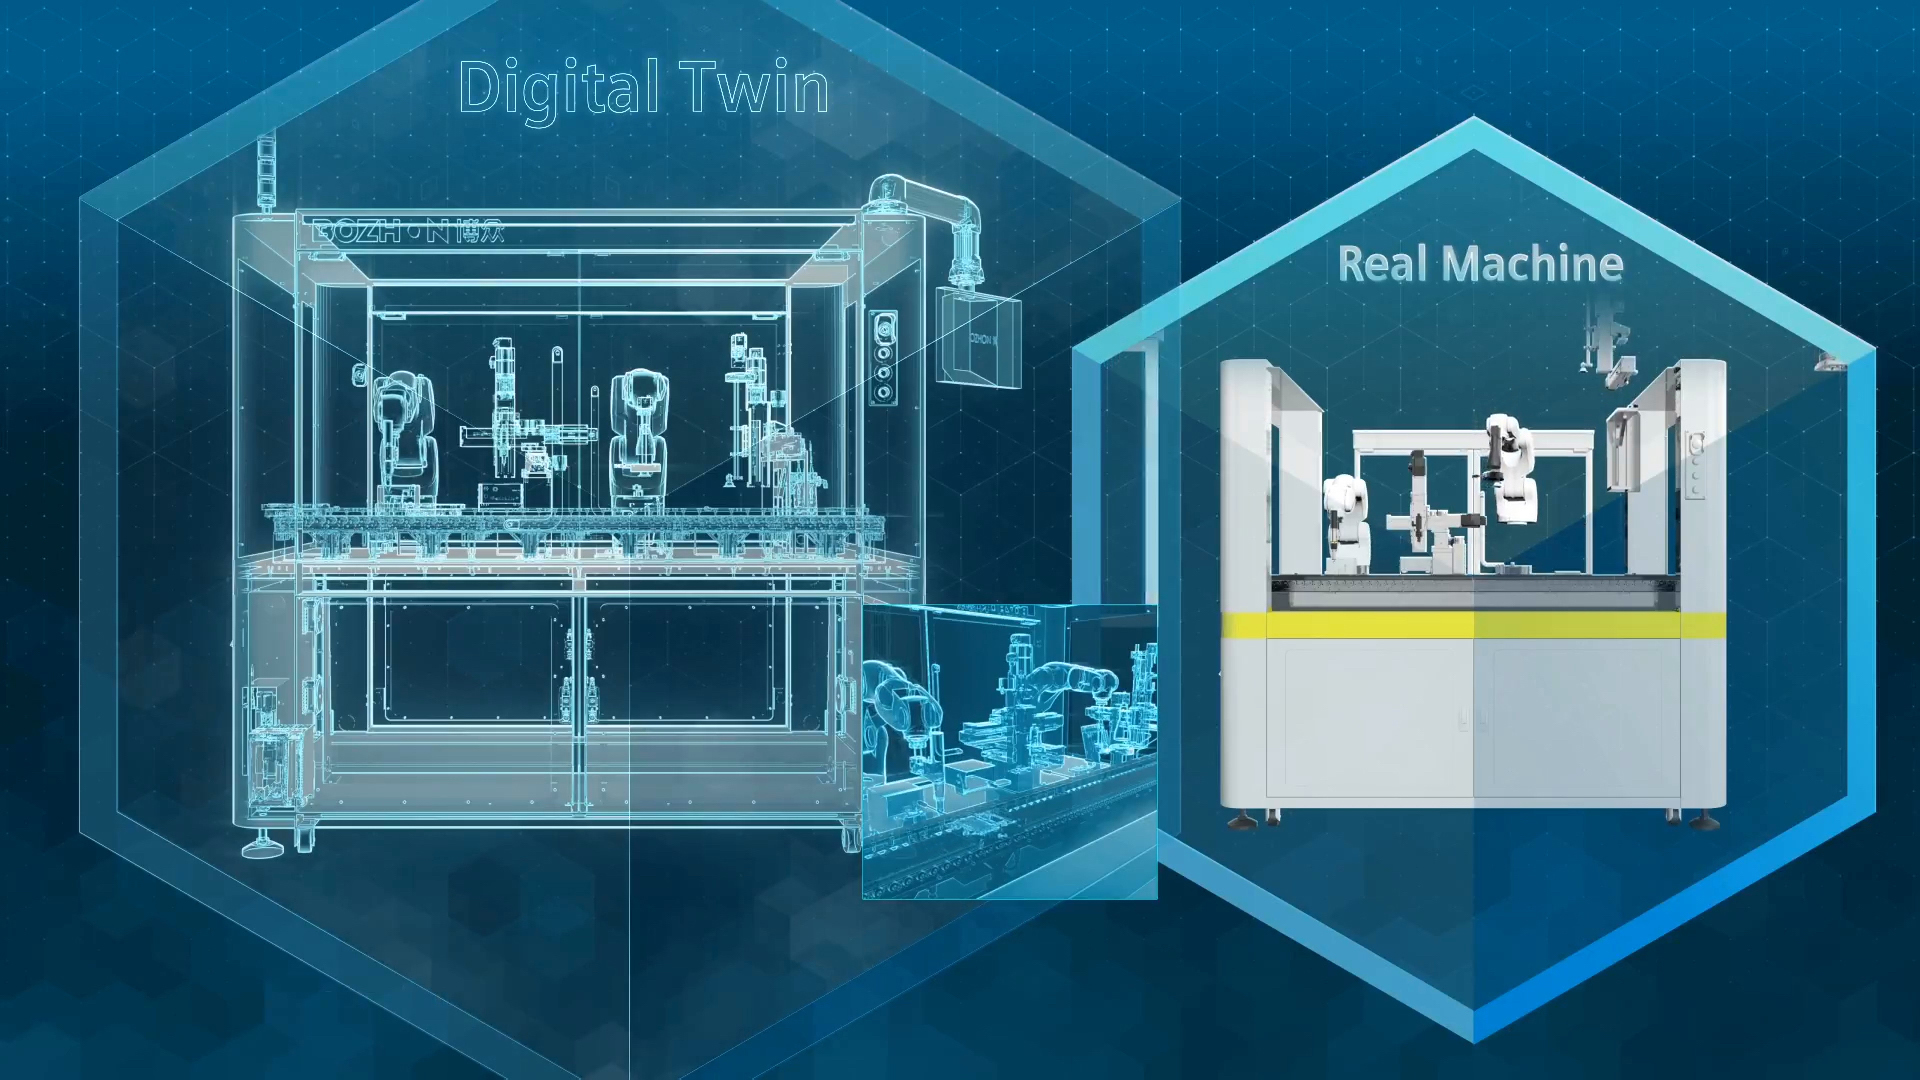 Digital_twin_in_manufacturing